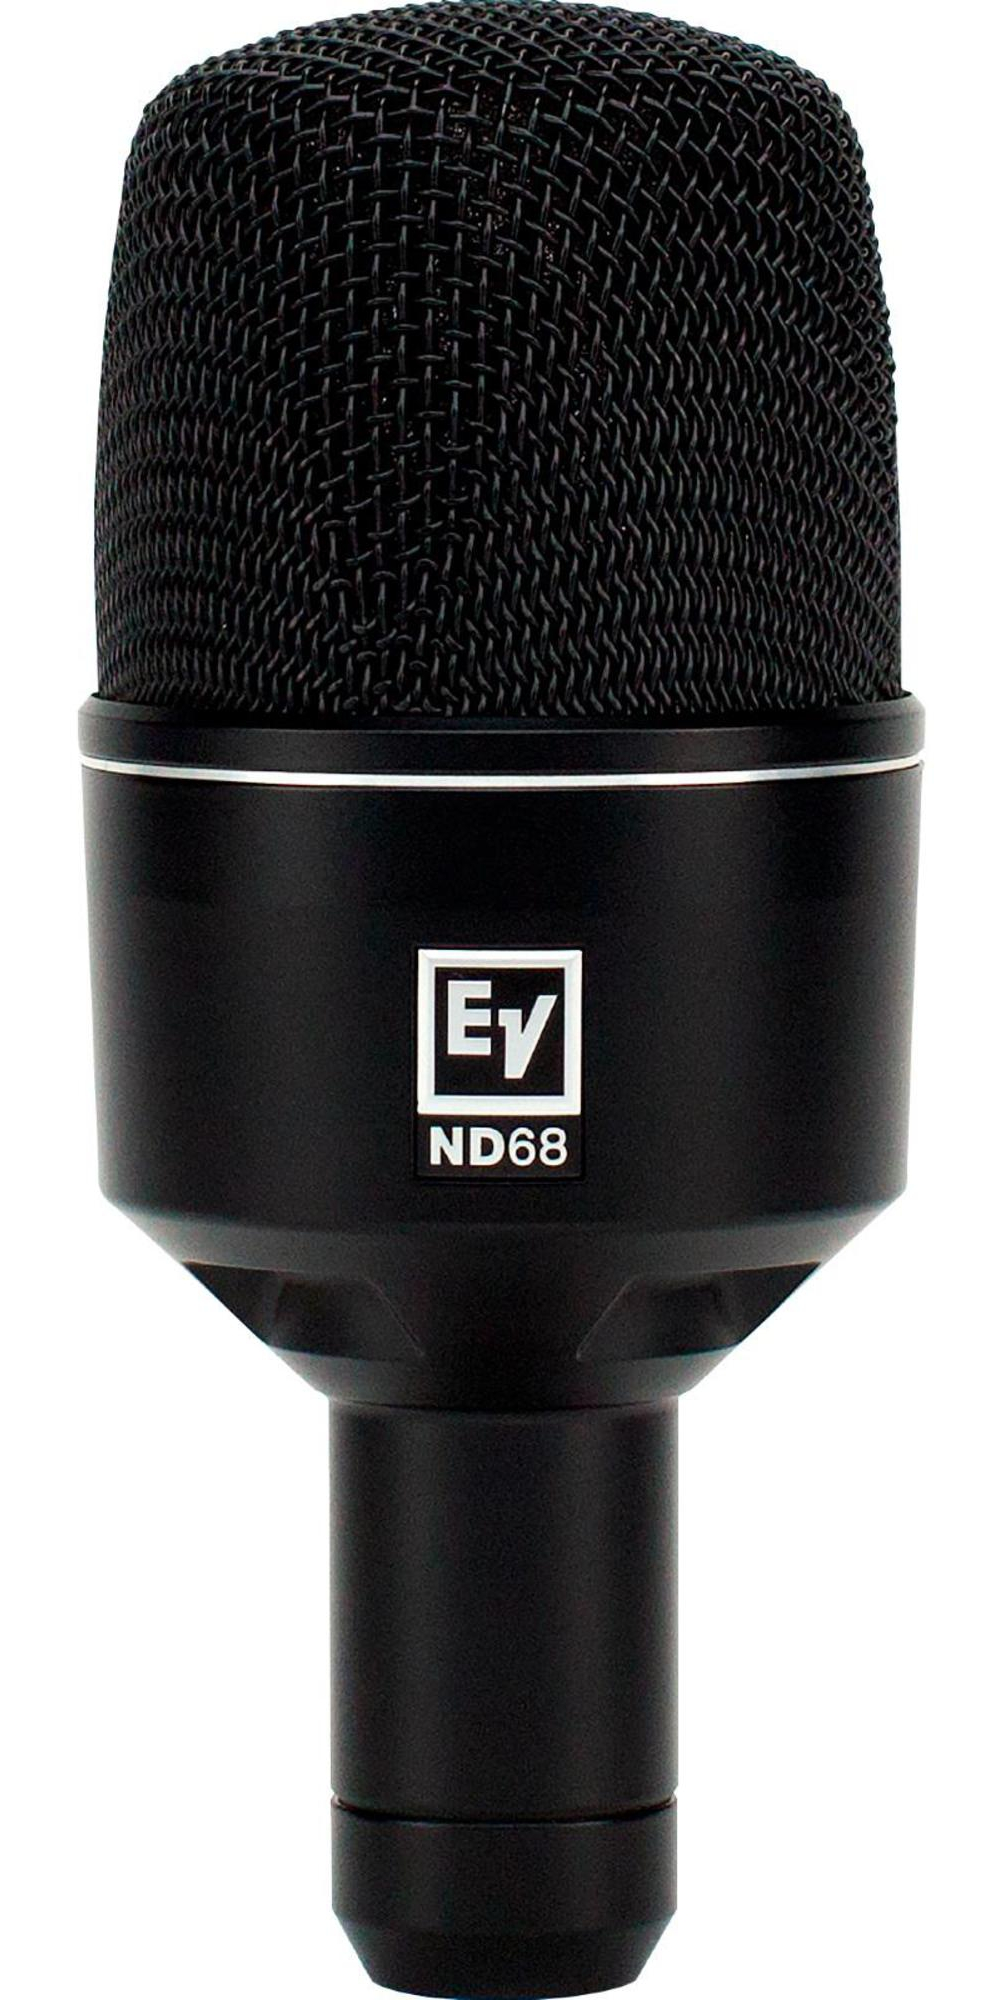 ND68 Dynamic Supercardioid Bass Drum Microphone by Electro-Voice